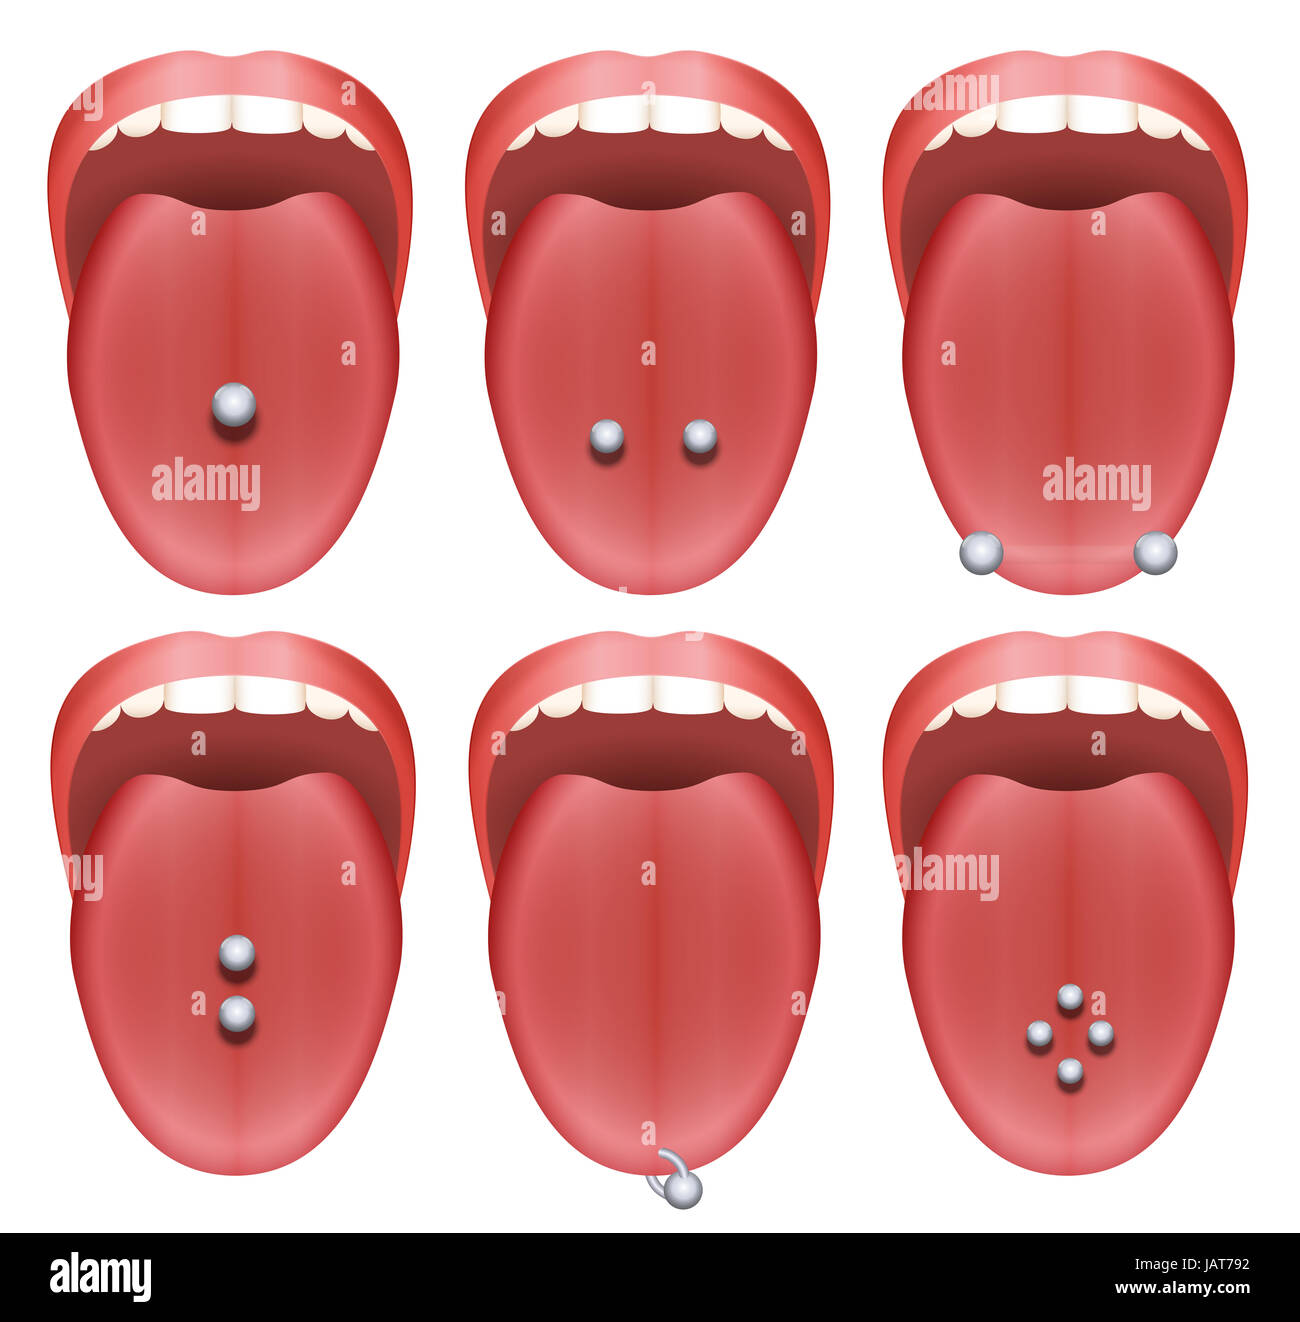 Tongue Piercing Examples Nine Different Illustrations On White